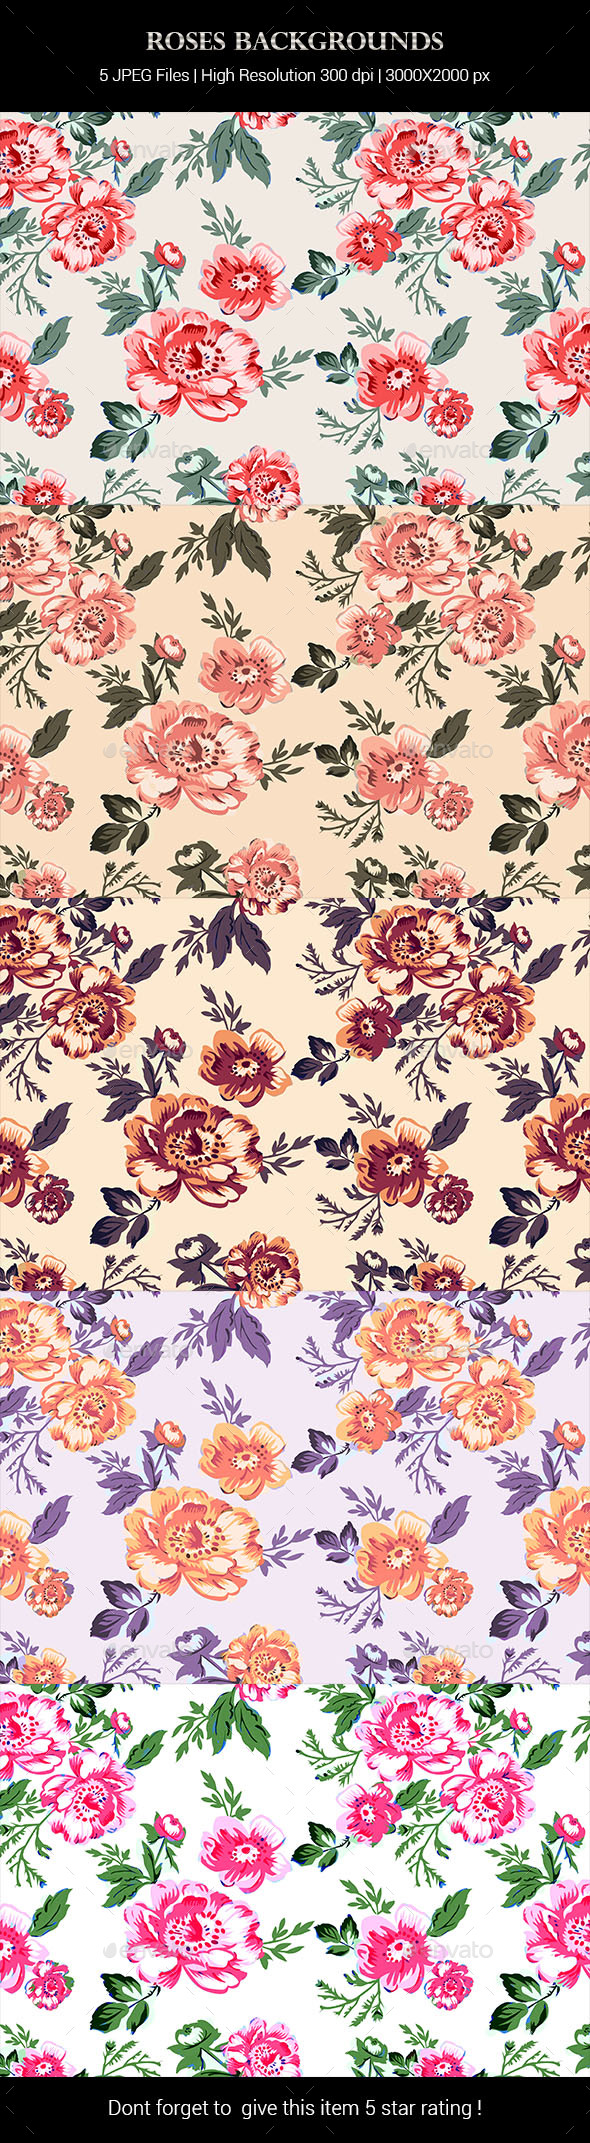 Roses Backgrounds - Patterns Backgrounds